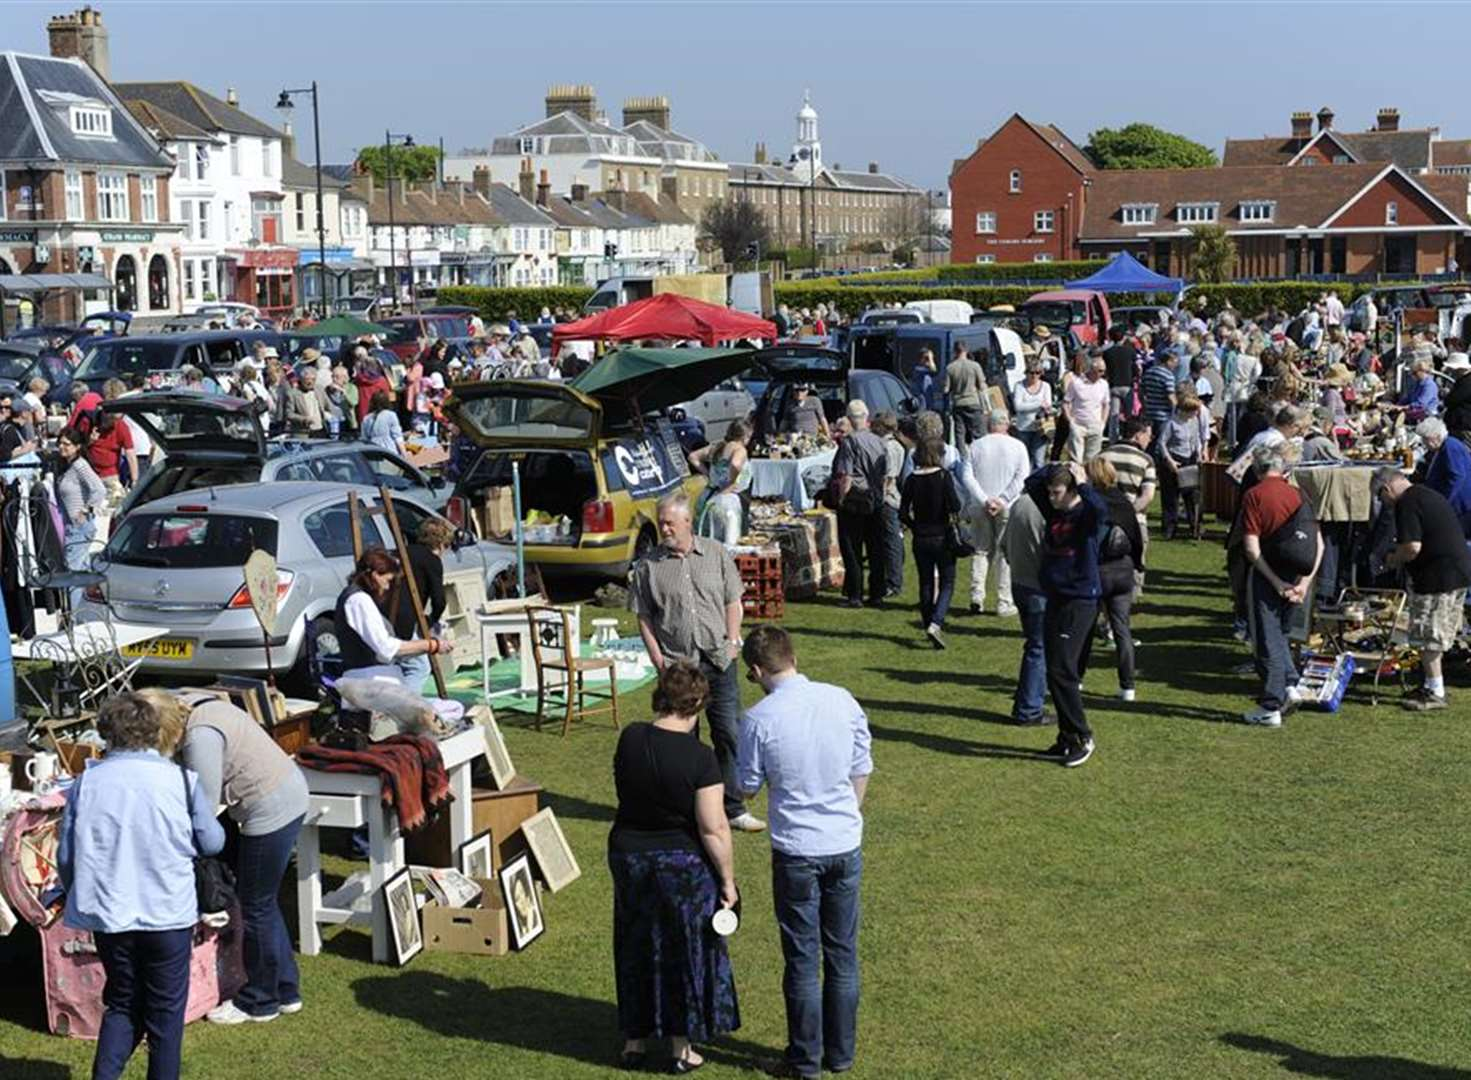 Stalls on the green for today's Brocante